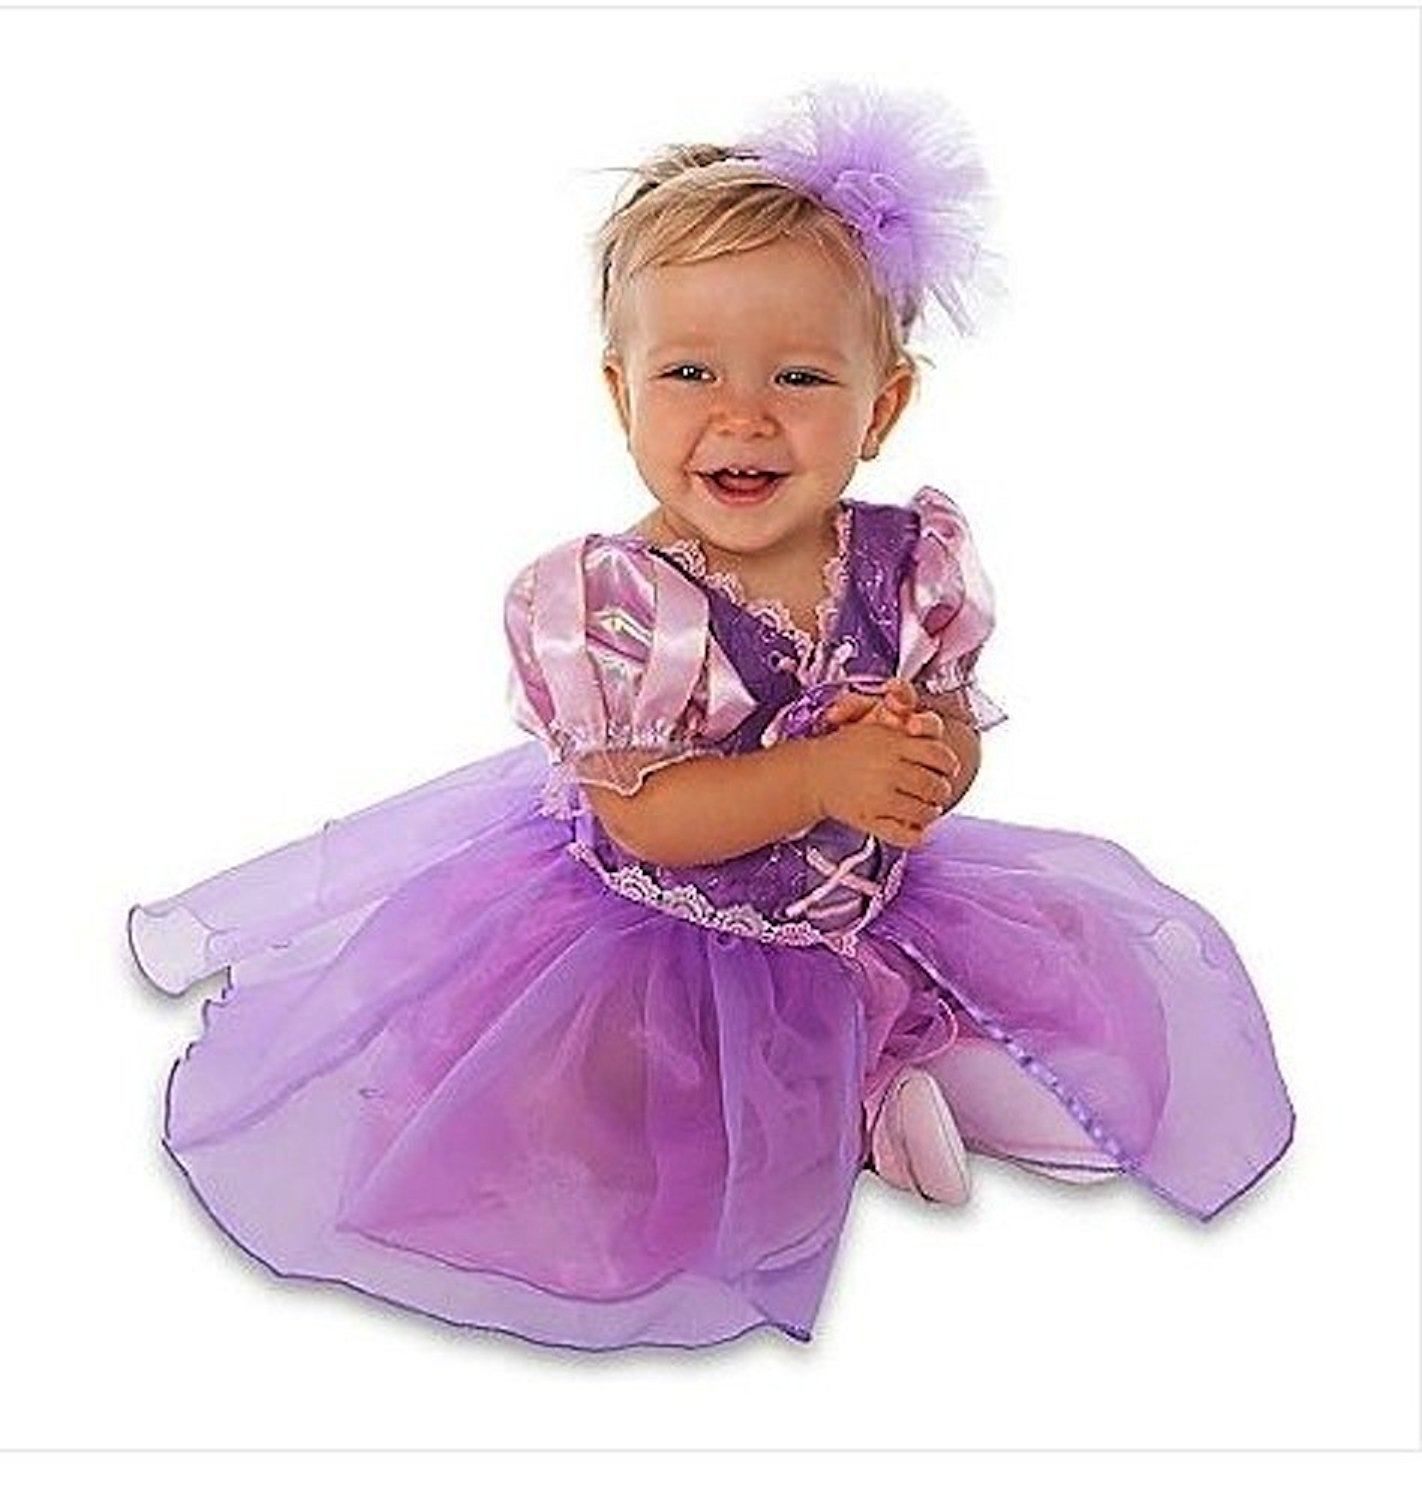 c8769bc31e9d Disney Store Tangled Princess Rapunzel Costume Size 3-6 Months: Dress  w/Headband